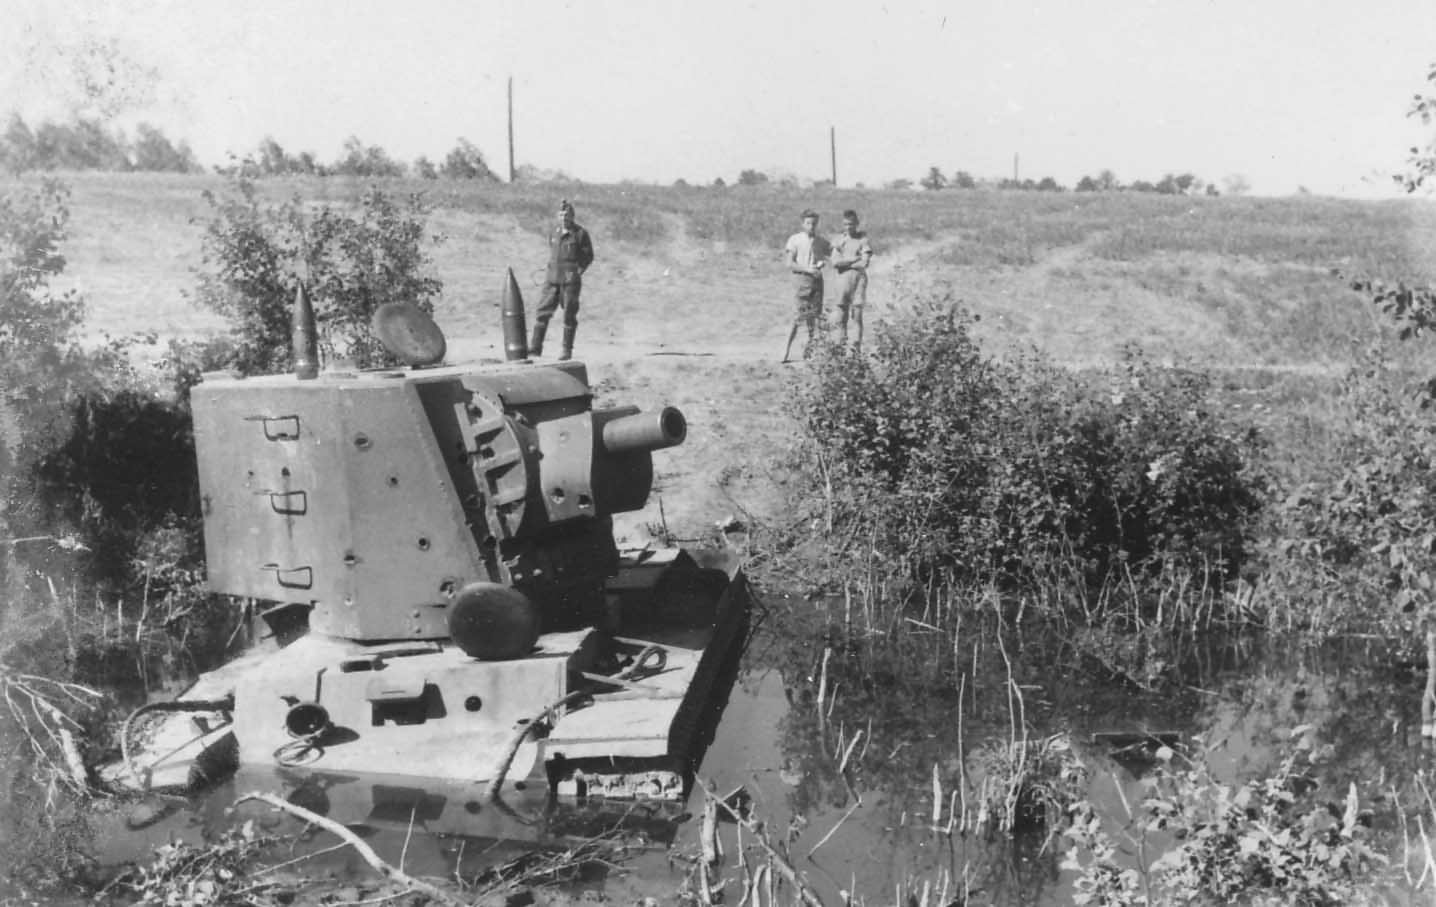 KV-2 tank model 1940 with early turret stuck in a muddy river bed